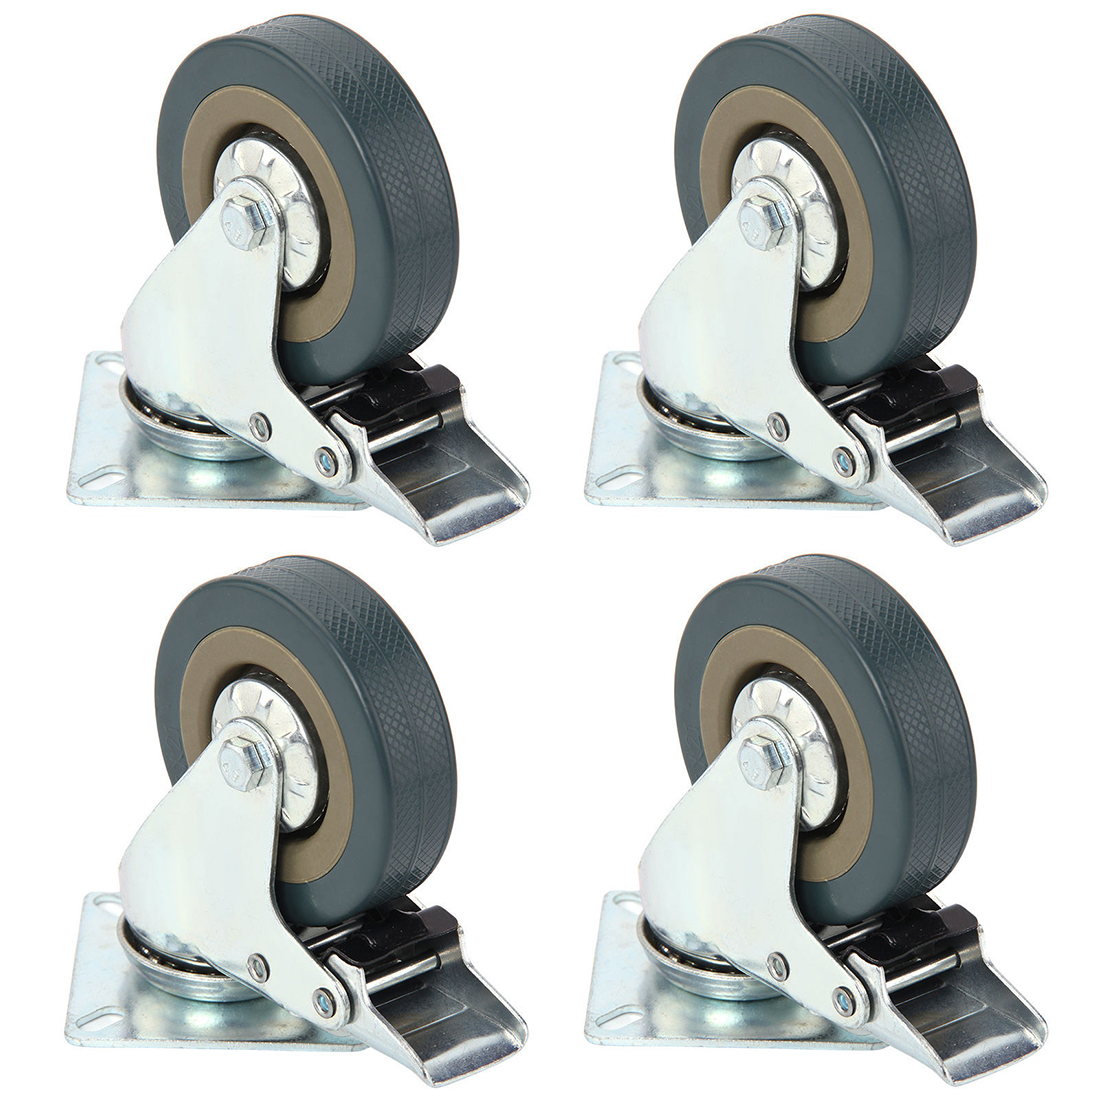 Set of Heavy Duty 65x21mm Rubber Swivel Castor Wheels Trolley Caster Brake 40KGModel:4 with brake ys 138no nc ansi standard heavy duty electric strike size 124 x 32 x 33 mm